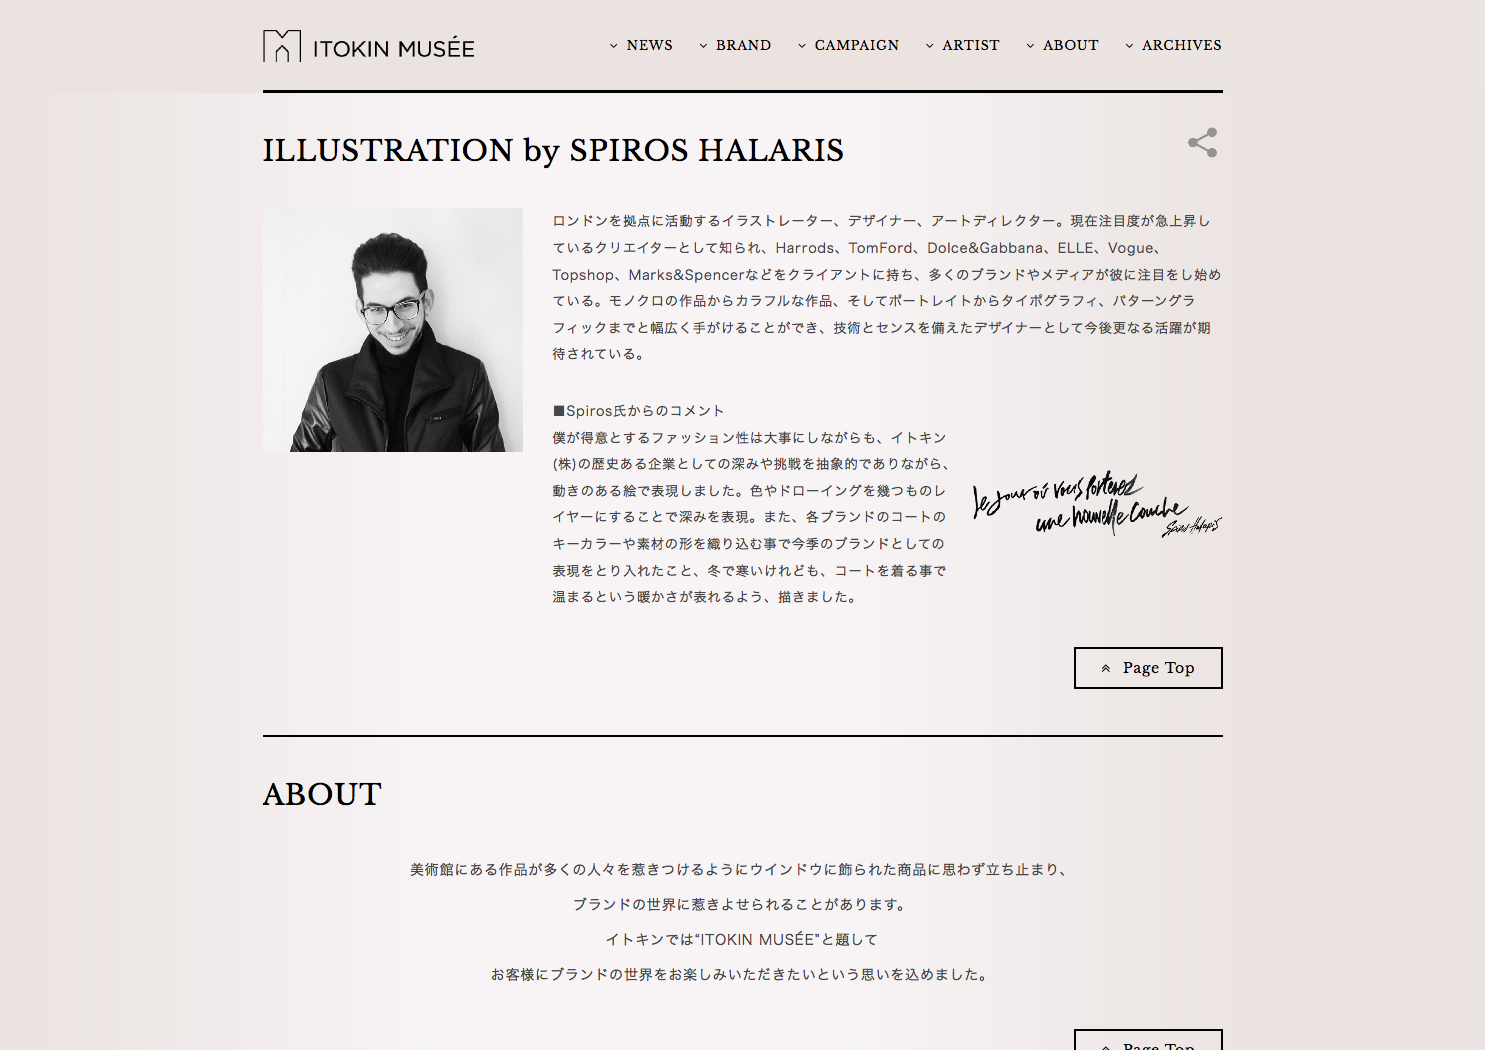 ITOKIN MUSEE Official Website 2014